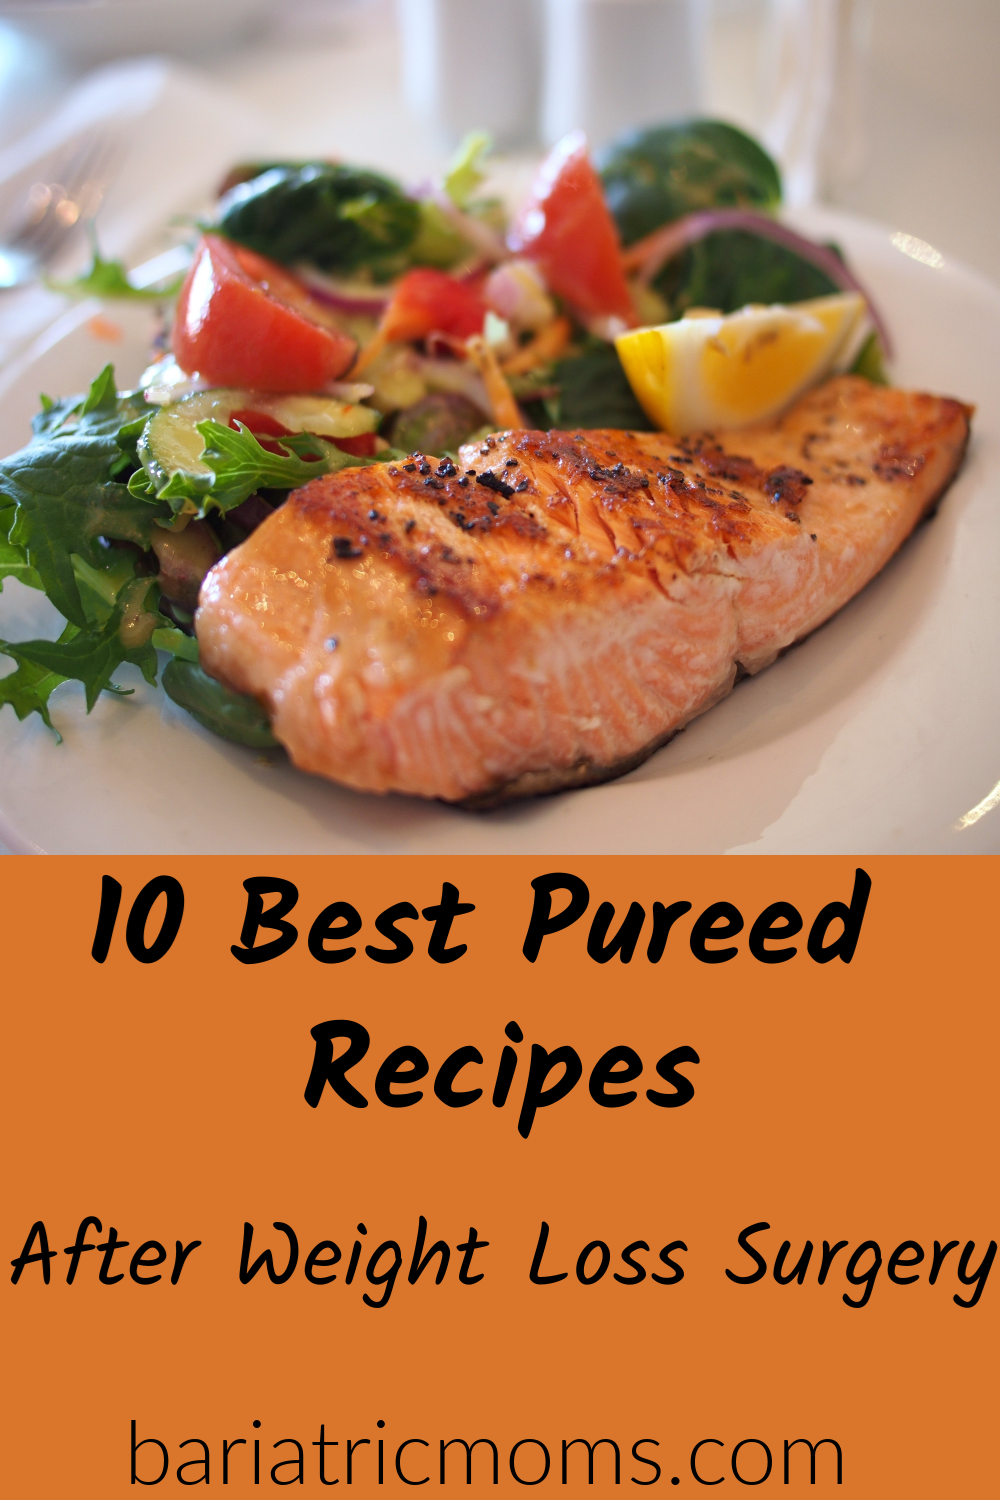 The 10 Best Pureed/Soft Food recipes After Bariatric